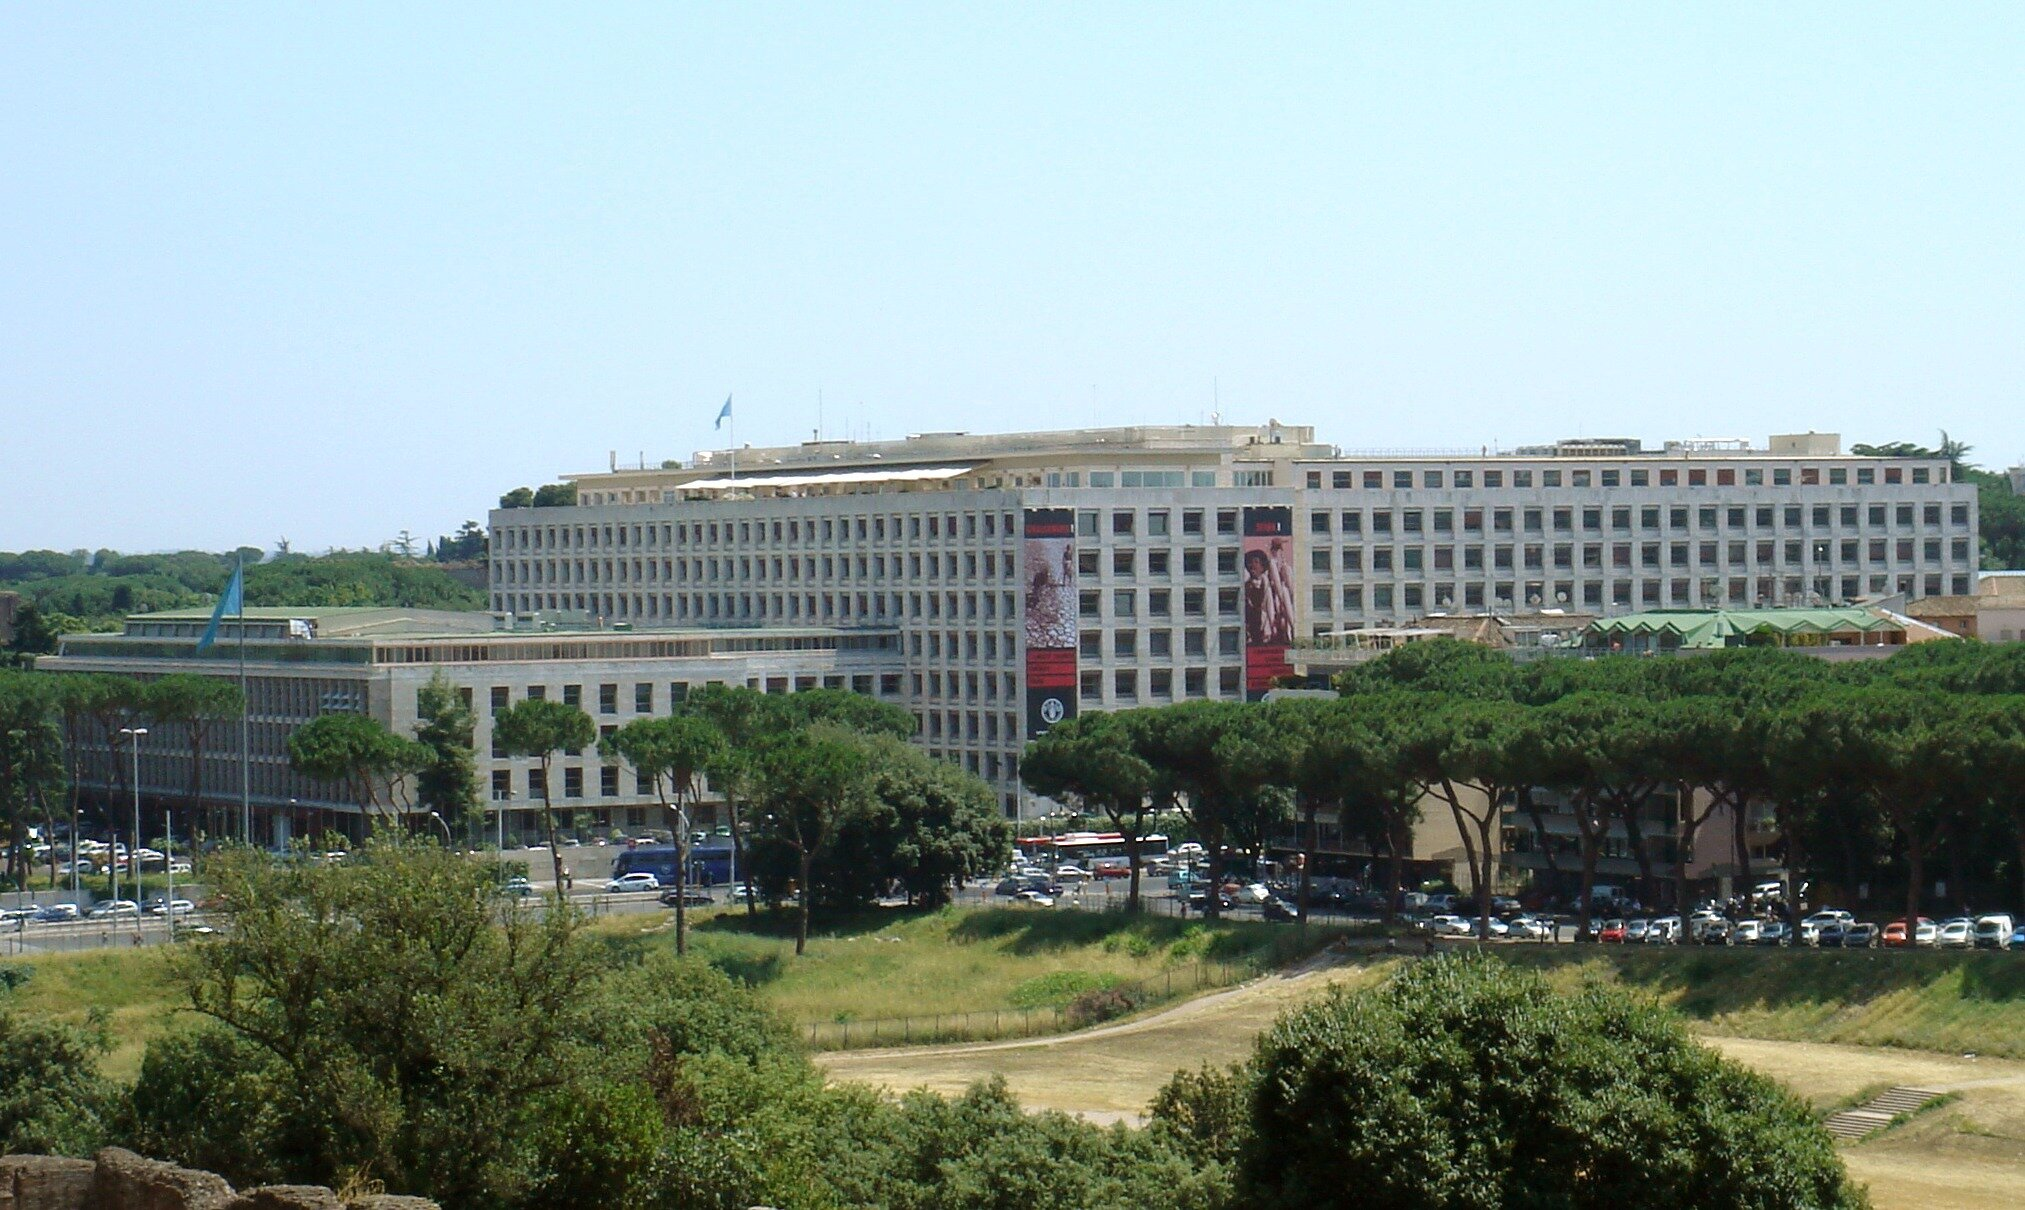 The Food and Agriculture Organisation, Rome, Italy